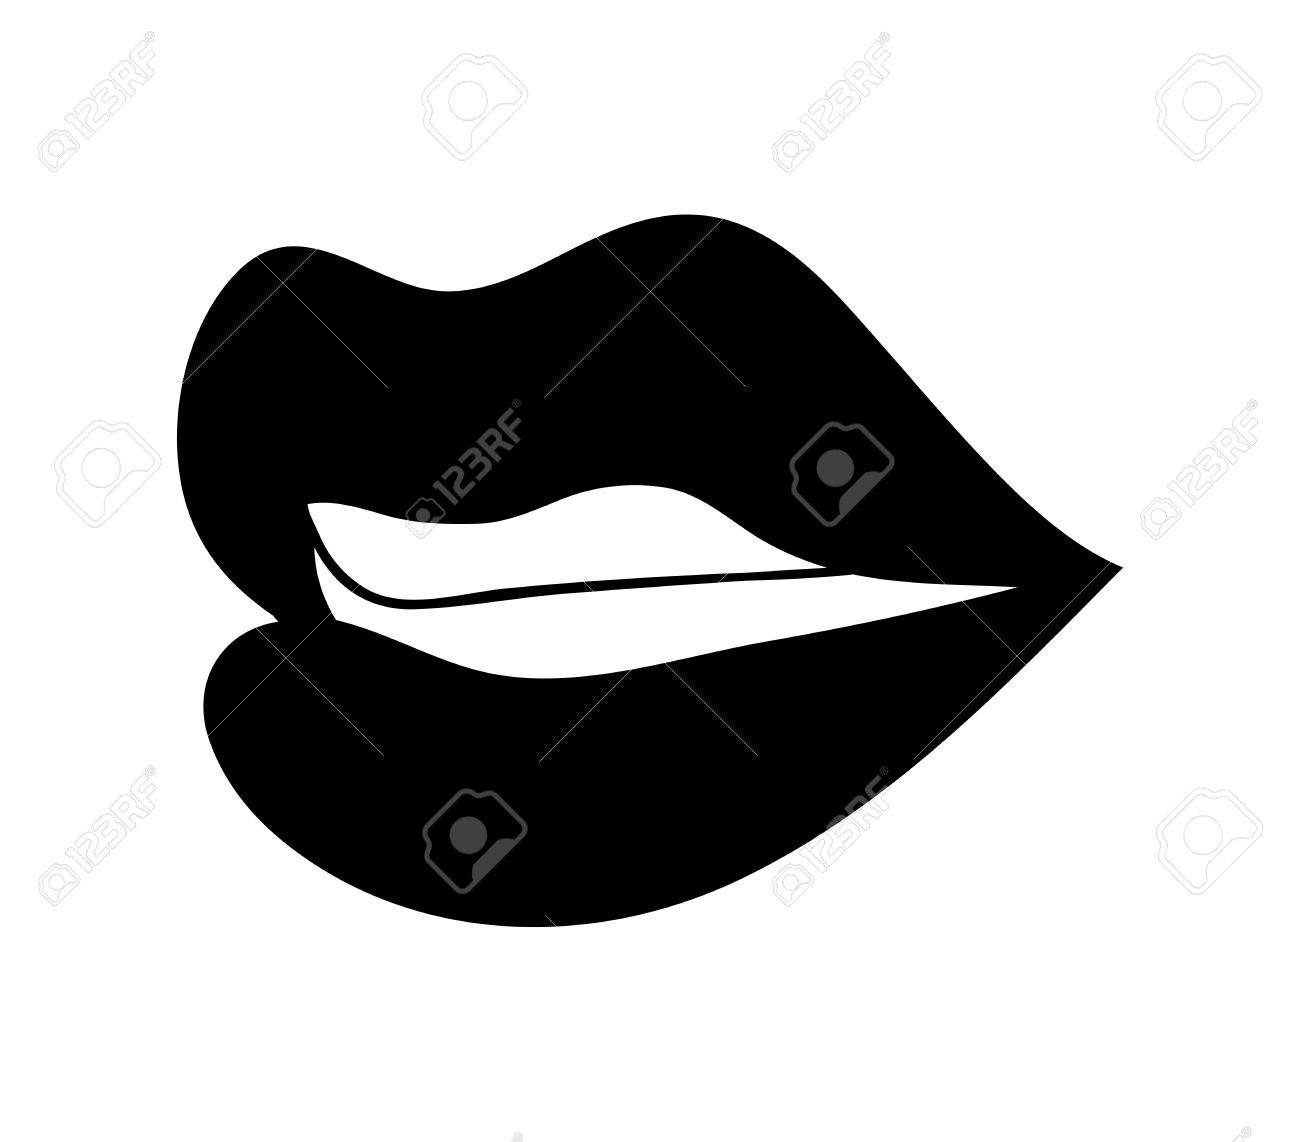 lips with teeth cartoon vector symbol icon design beautiful rh 123rf com vector lips black and white vector lips png